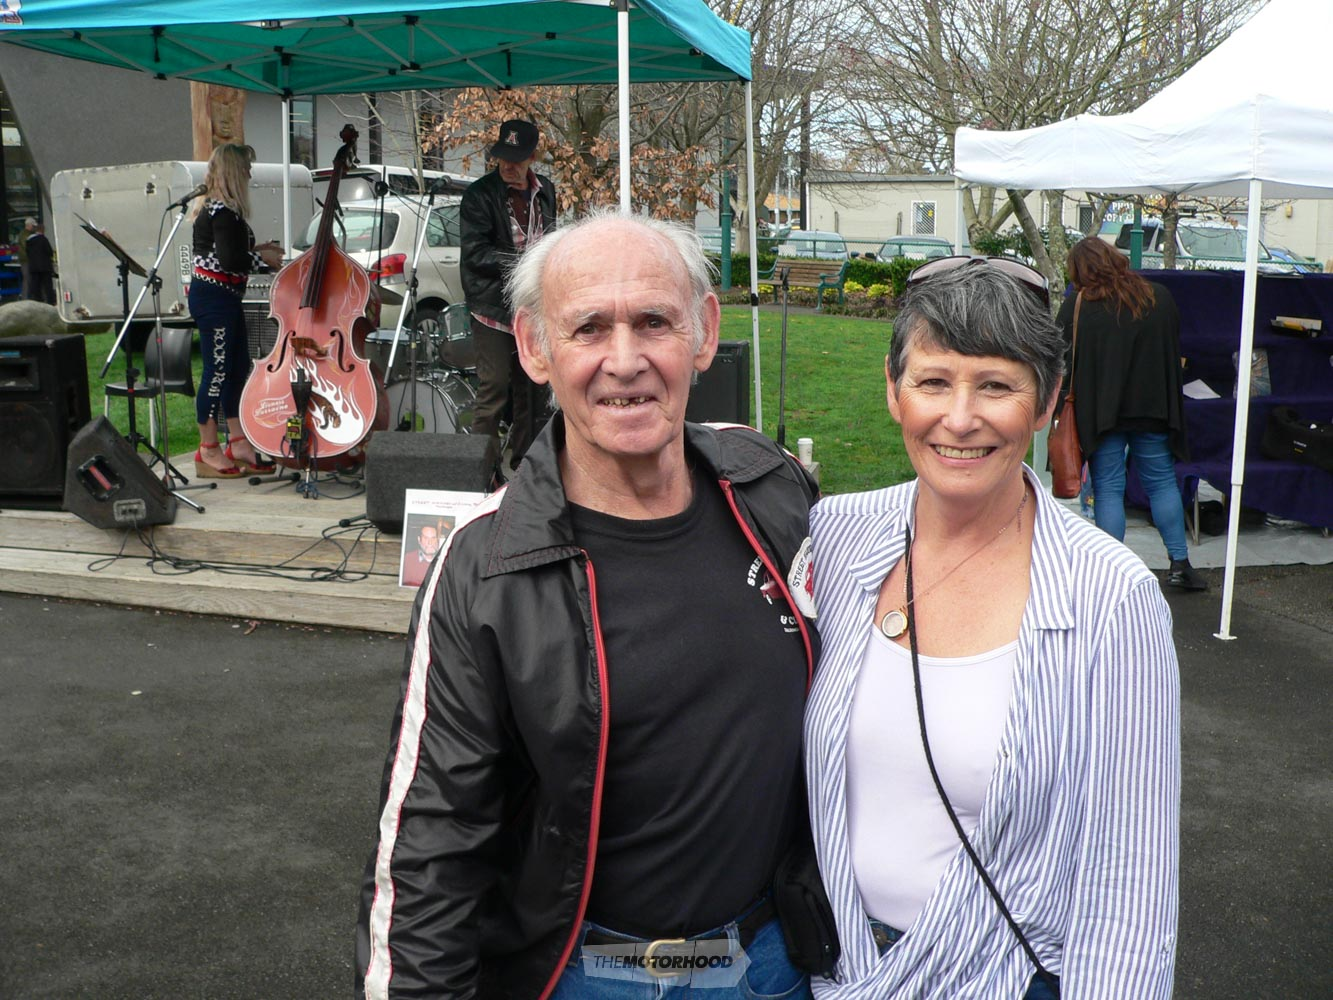 Graeme & Cathy are old friends from way back in the early days of hot rodding.jpg